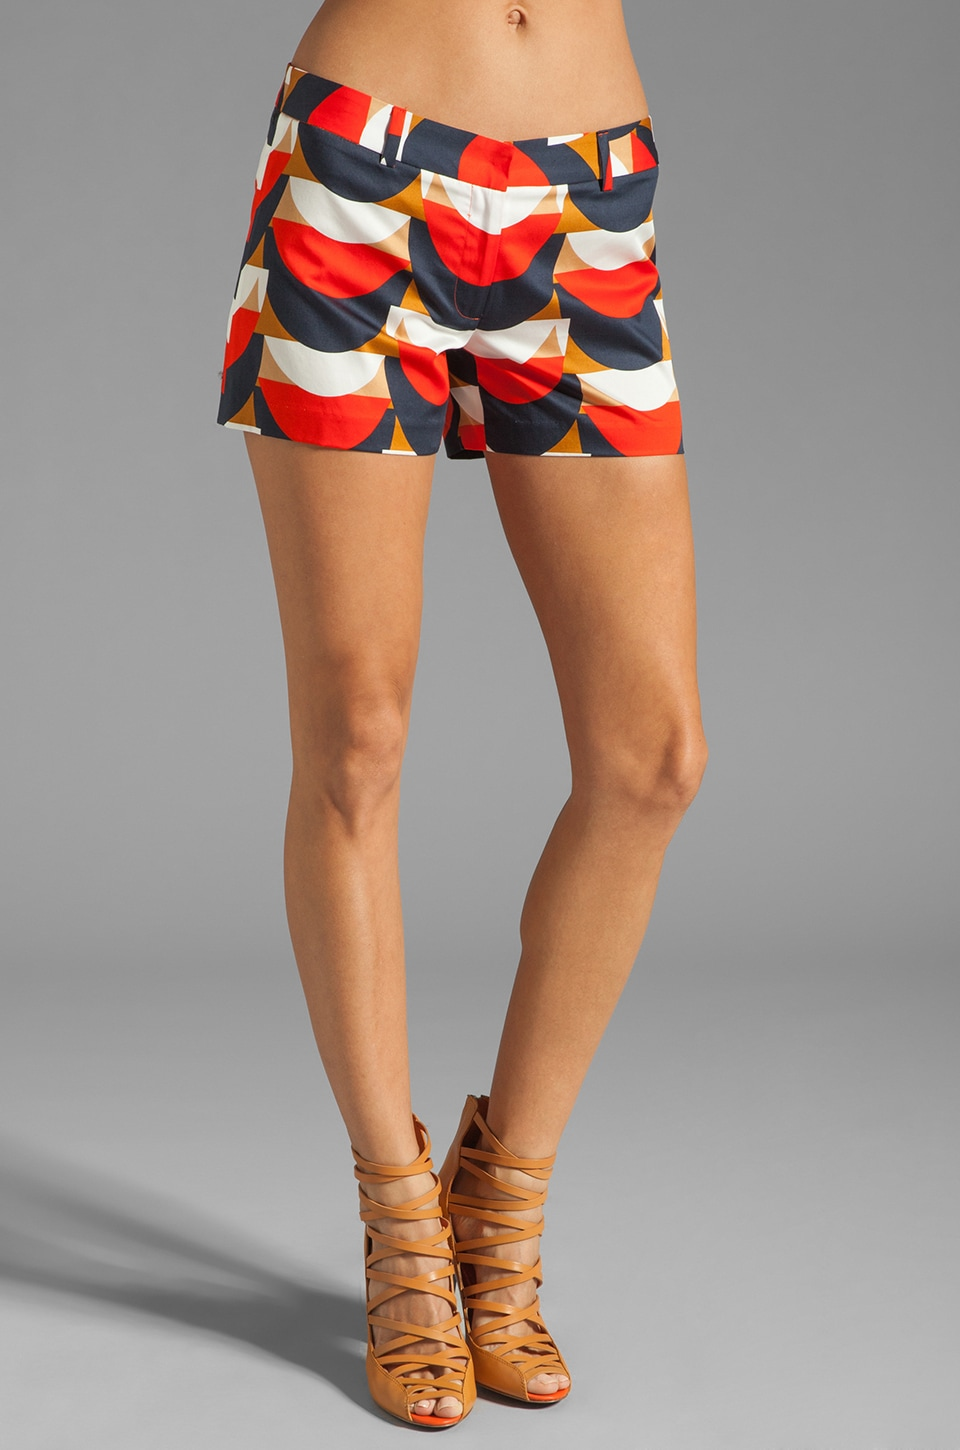 MILLY Scallop Print Dickies Short in Persimmon